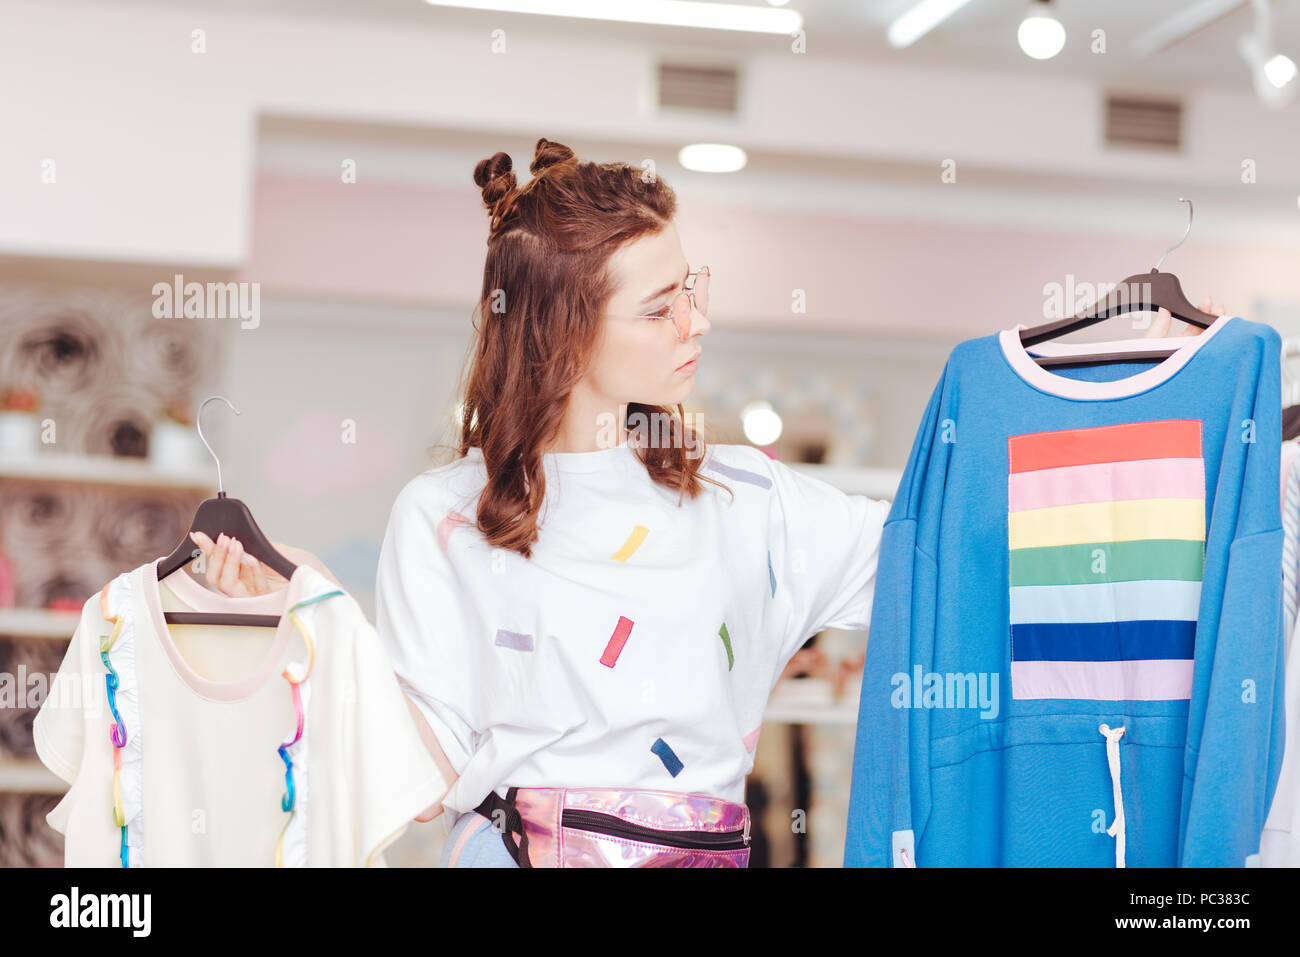 Two items. Shopaholic wearing bright pink waist bag choosing between two items while hesitating a little bit - Stock Image